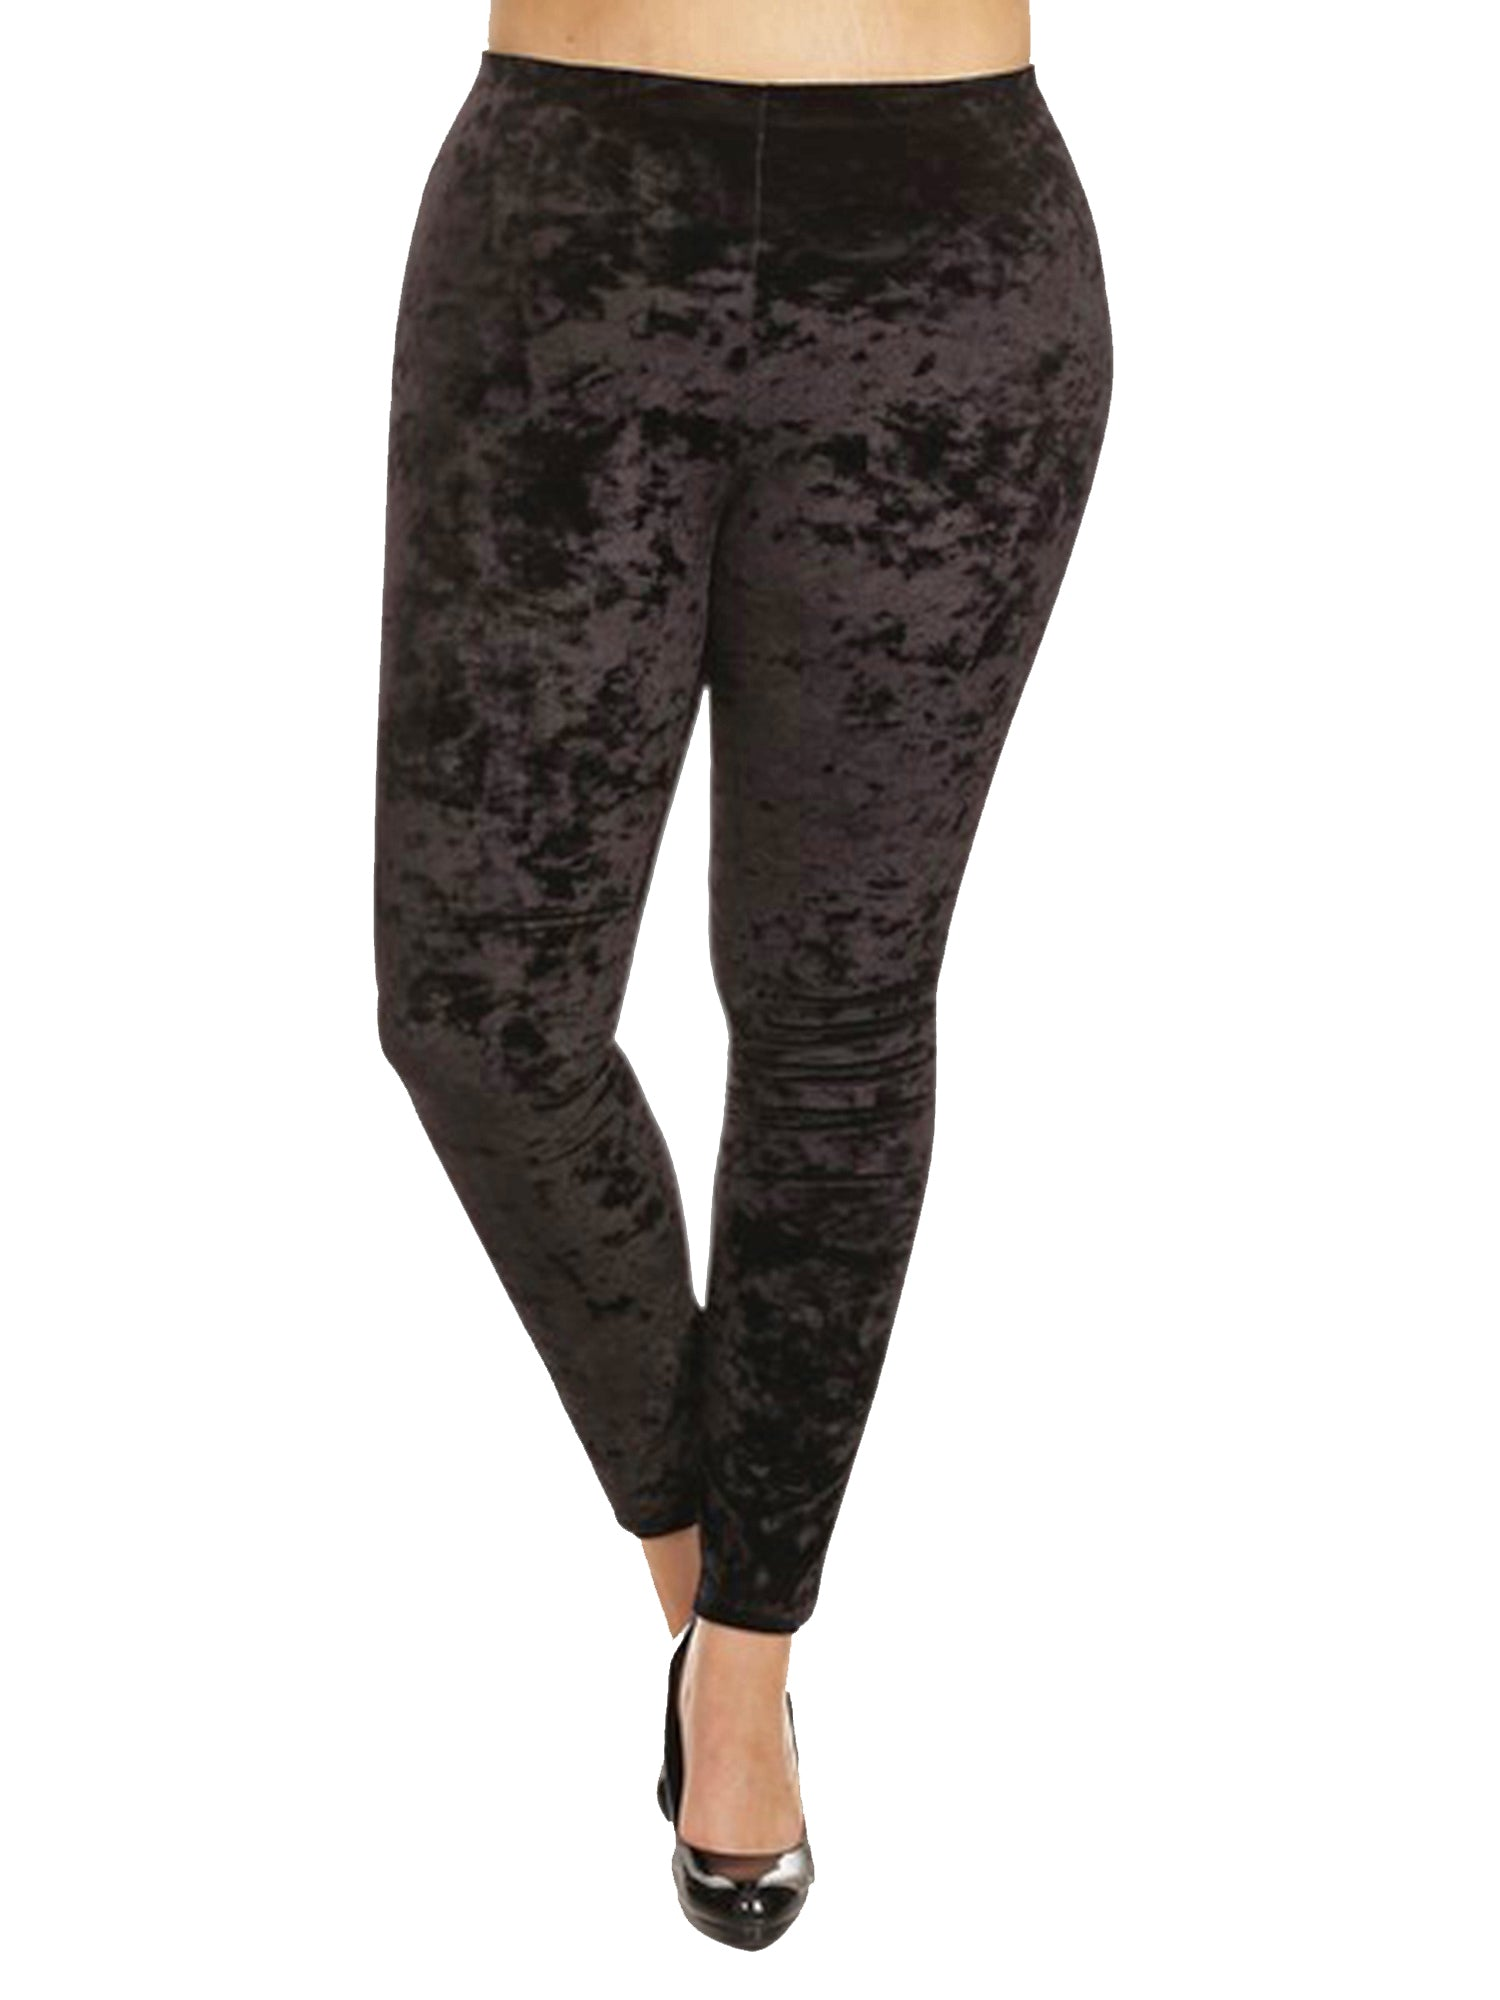 f8d256a7fbc2bb Crushed Velvet Plus Size Leggings For Women – Luxury Divas